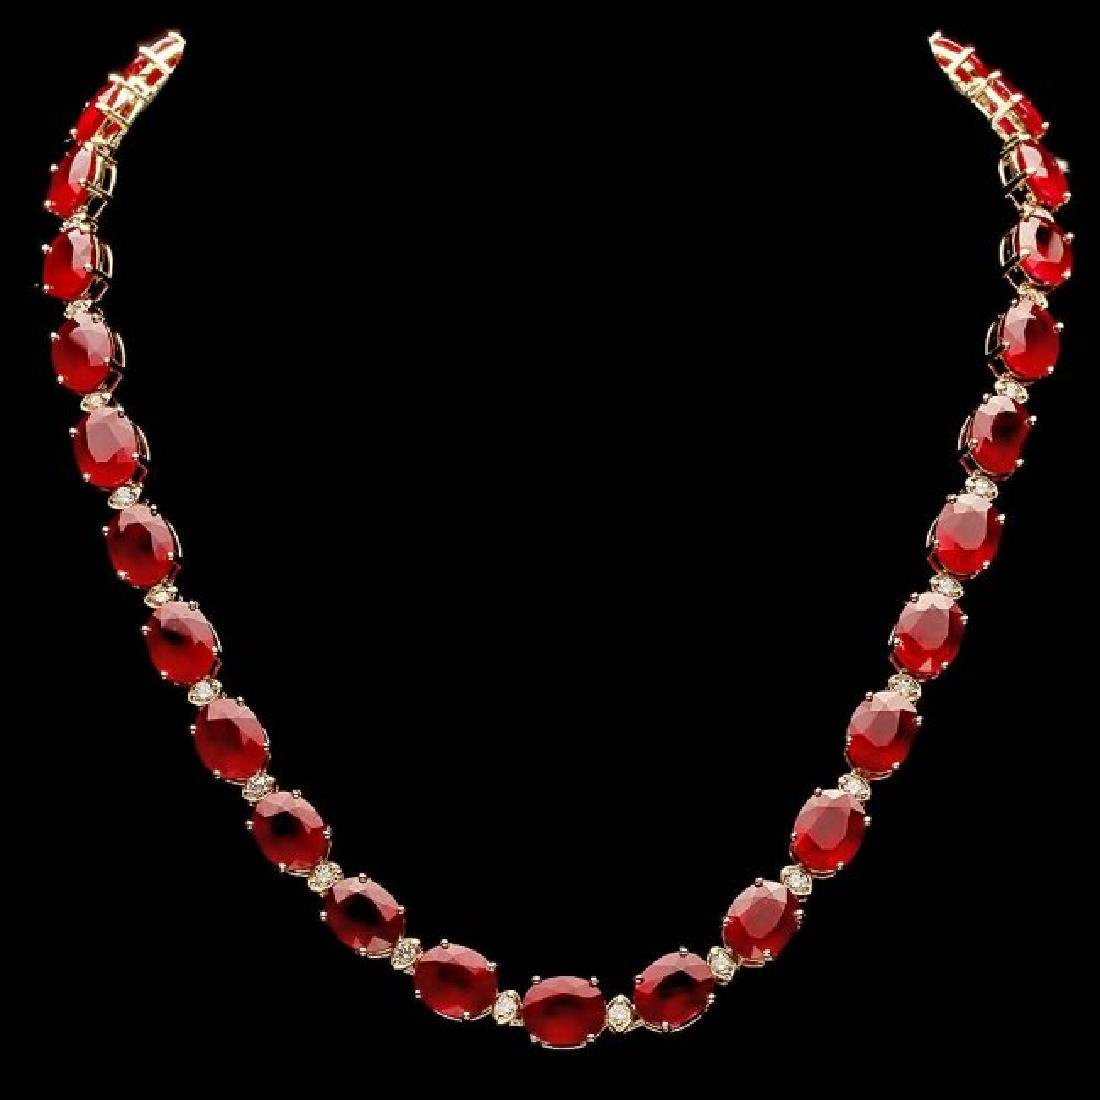 14k Gold 112.00ct Ruby 1.80ct Diamond Necklace